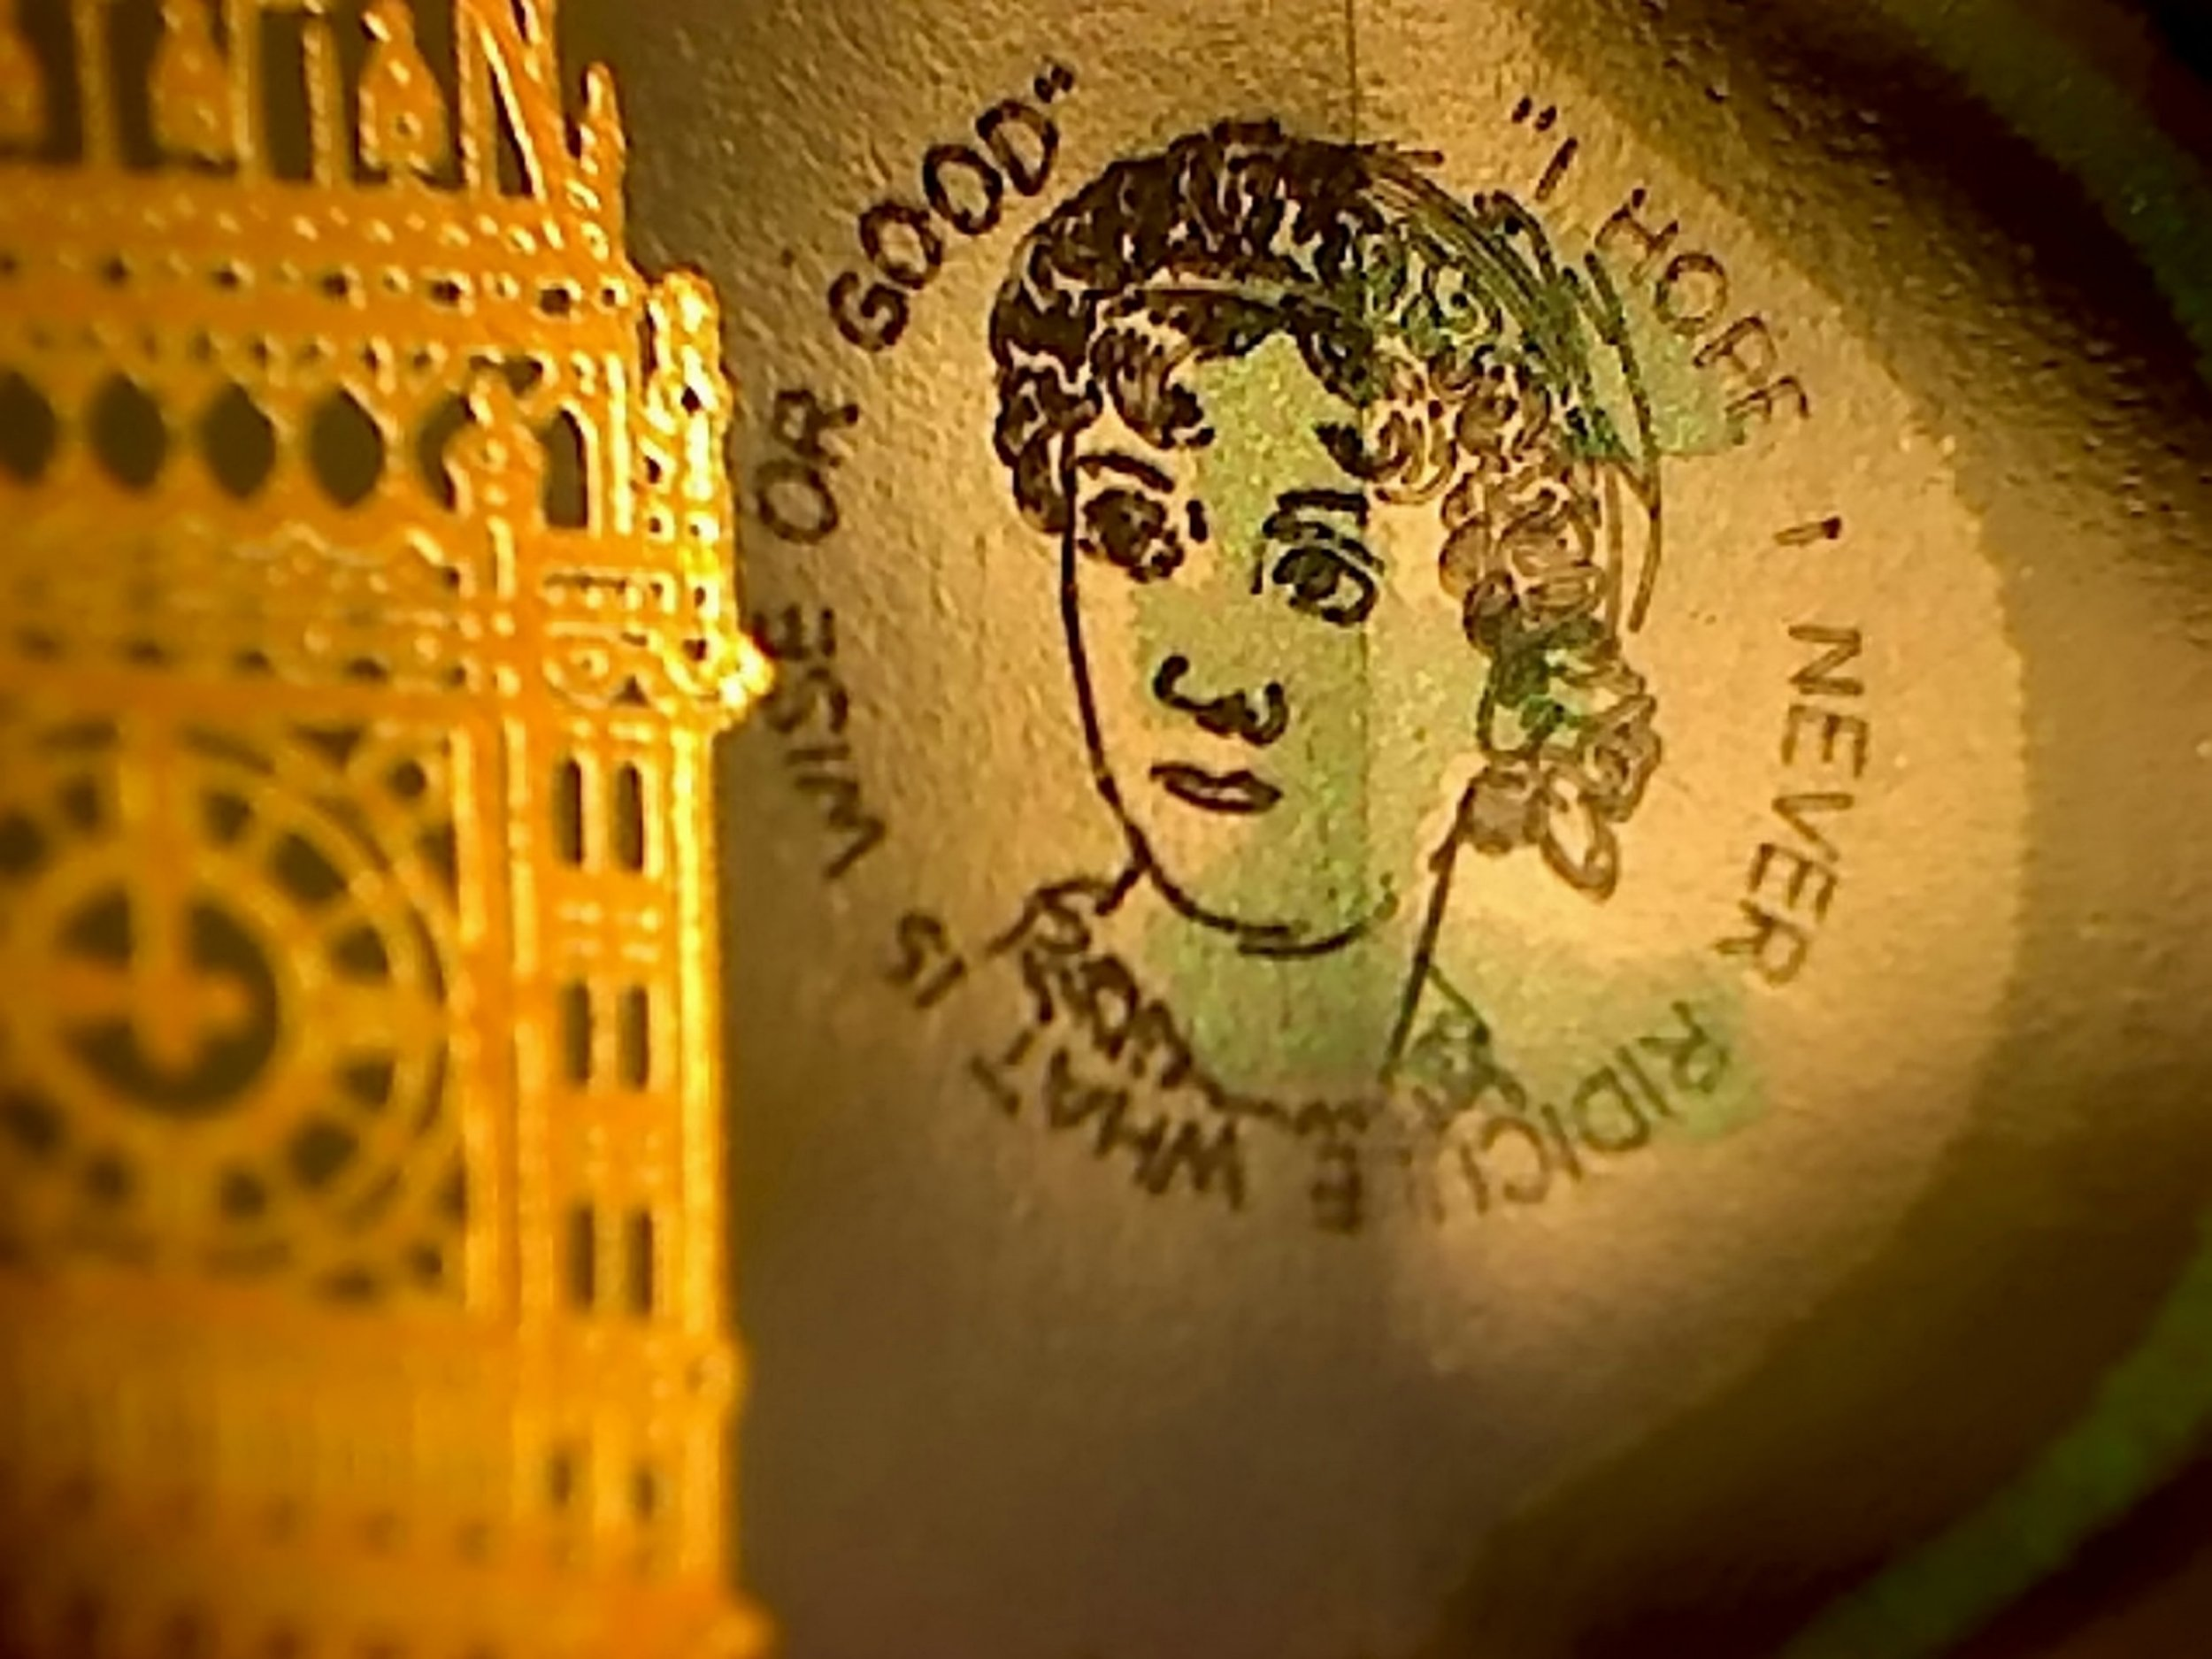 The Jane Austen portrait. Brits are being urged to check their new fivers after engraved bank notes worth as much as £50,000 were circulated in a Willie Wonka-style 'Golden Ticket' giveaway. See NTI story NTINOTE. Tiny portraits of Jane Austen have been added to four of the new £5 notes by talented micro-engraver Graham Short. The 70-year-old painstakingly carved tiny 5mm portraits of the novelist onto the polymer cash, next to the images of Sir Winston Churchill and Big Ben. Classic quotes from Emma, Pride and Prejudice, and Mansfield Park have also been engraved on to the Bank of England notes, which went into circulation last weekend. The outline of the golden engraving ise visible to the naked eye - but a microscope will be needed to see it properly. Art experts are estimating that the four fivers could be worth up to £50,000 after collectors forked out thousands to buy notes with unusual serial numbers.